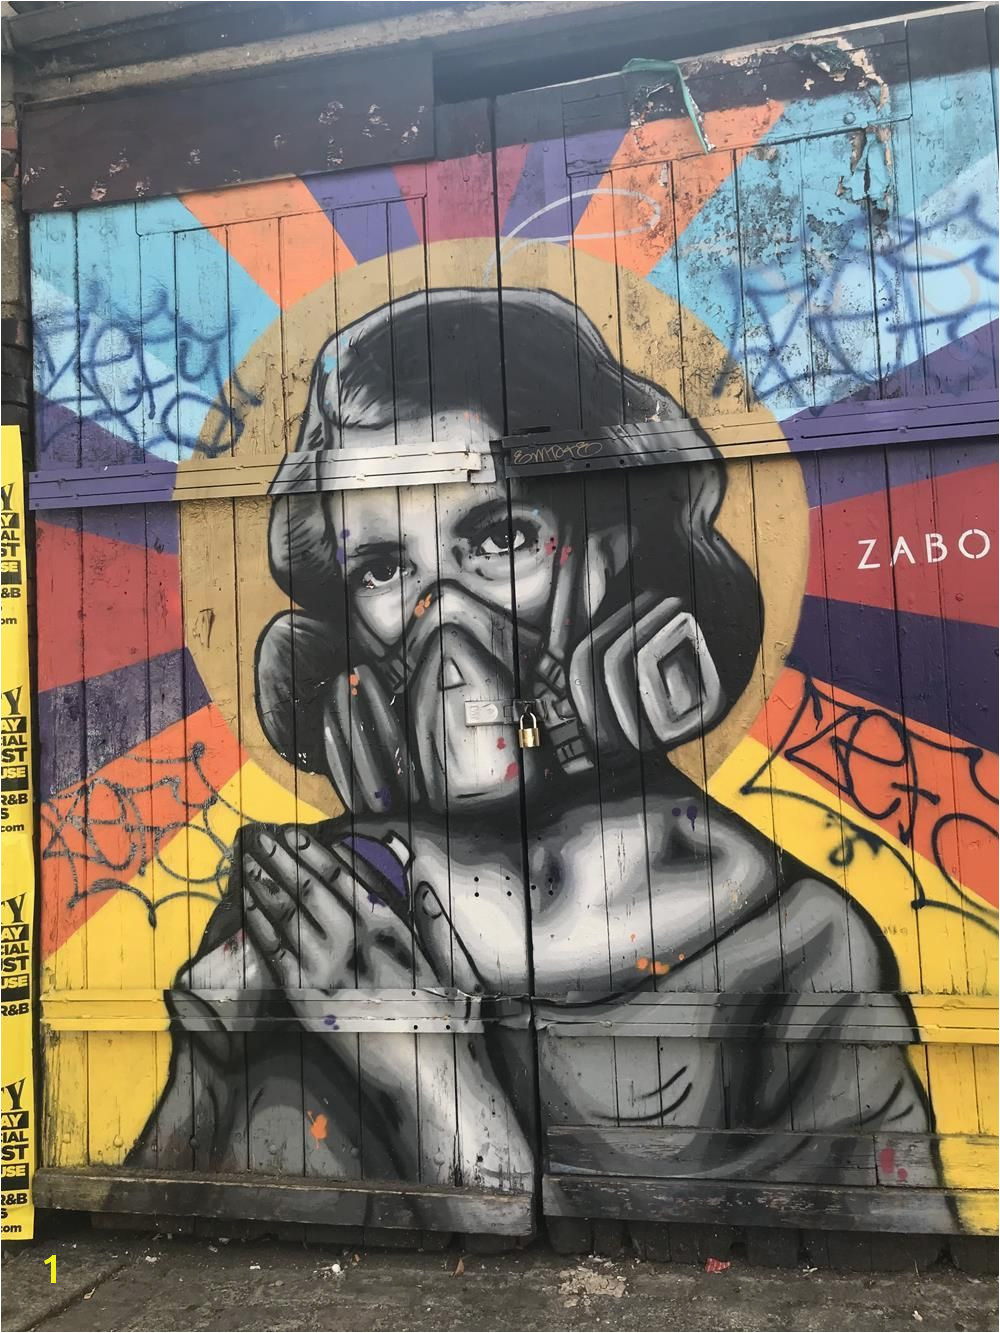 Explore the best Shoreditch street art on this behind the scenes tour shoreditch streetart graffiti murals